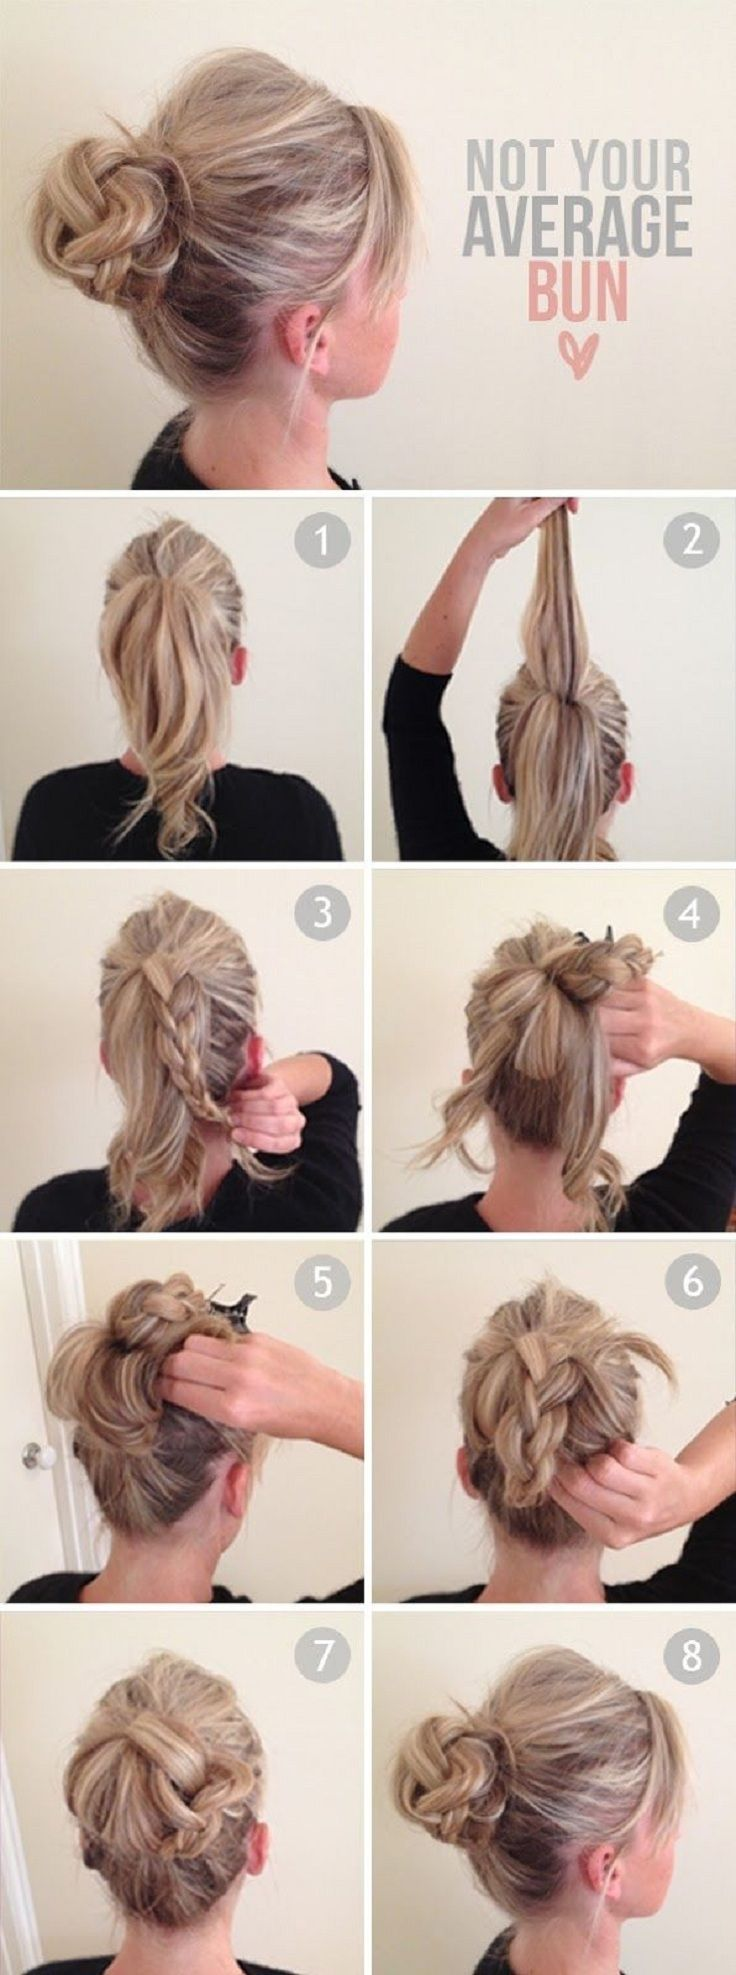 14 Amazing Double Braid Bun Hairstyles